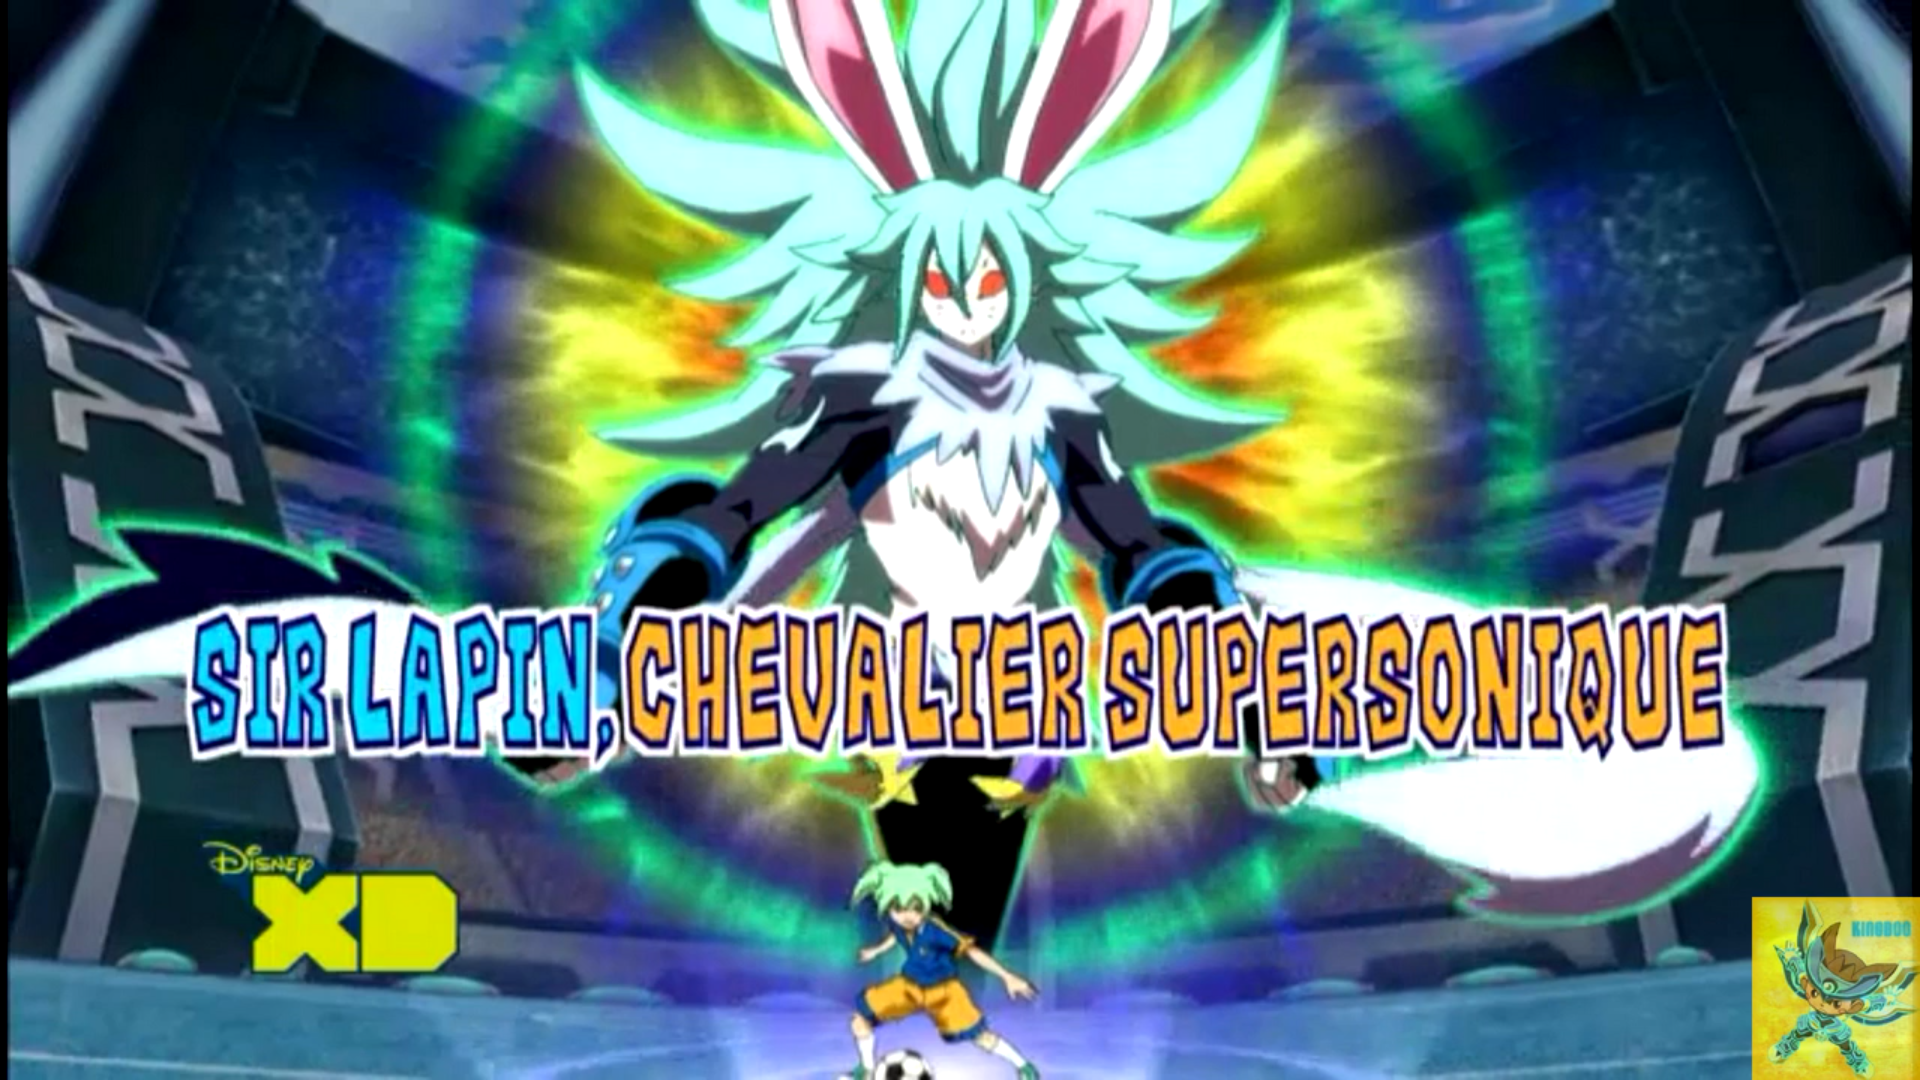 Sir Lapin, Chevalier Supersonique